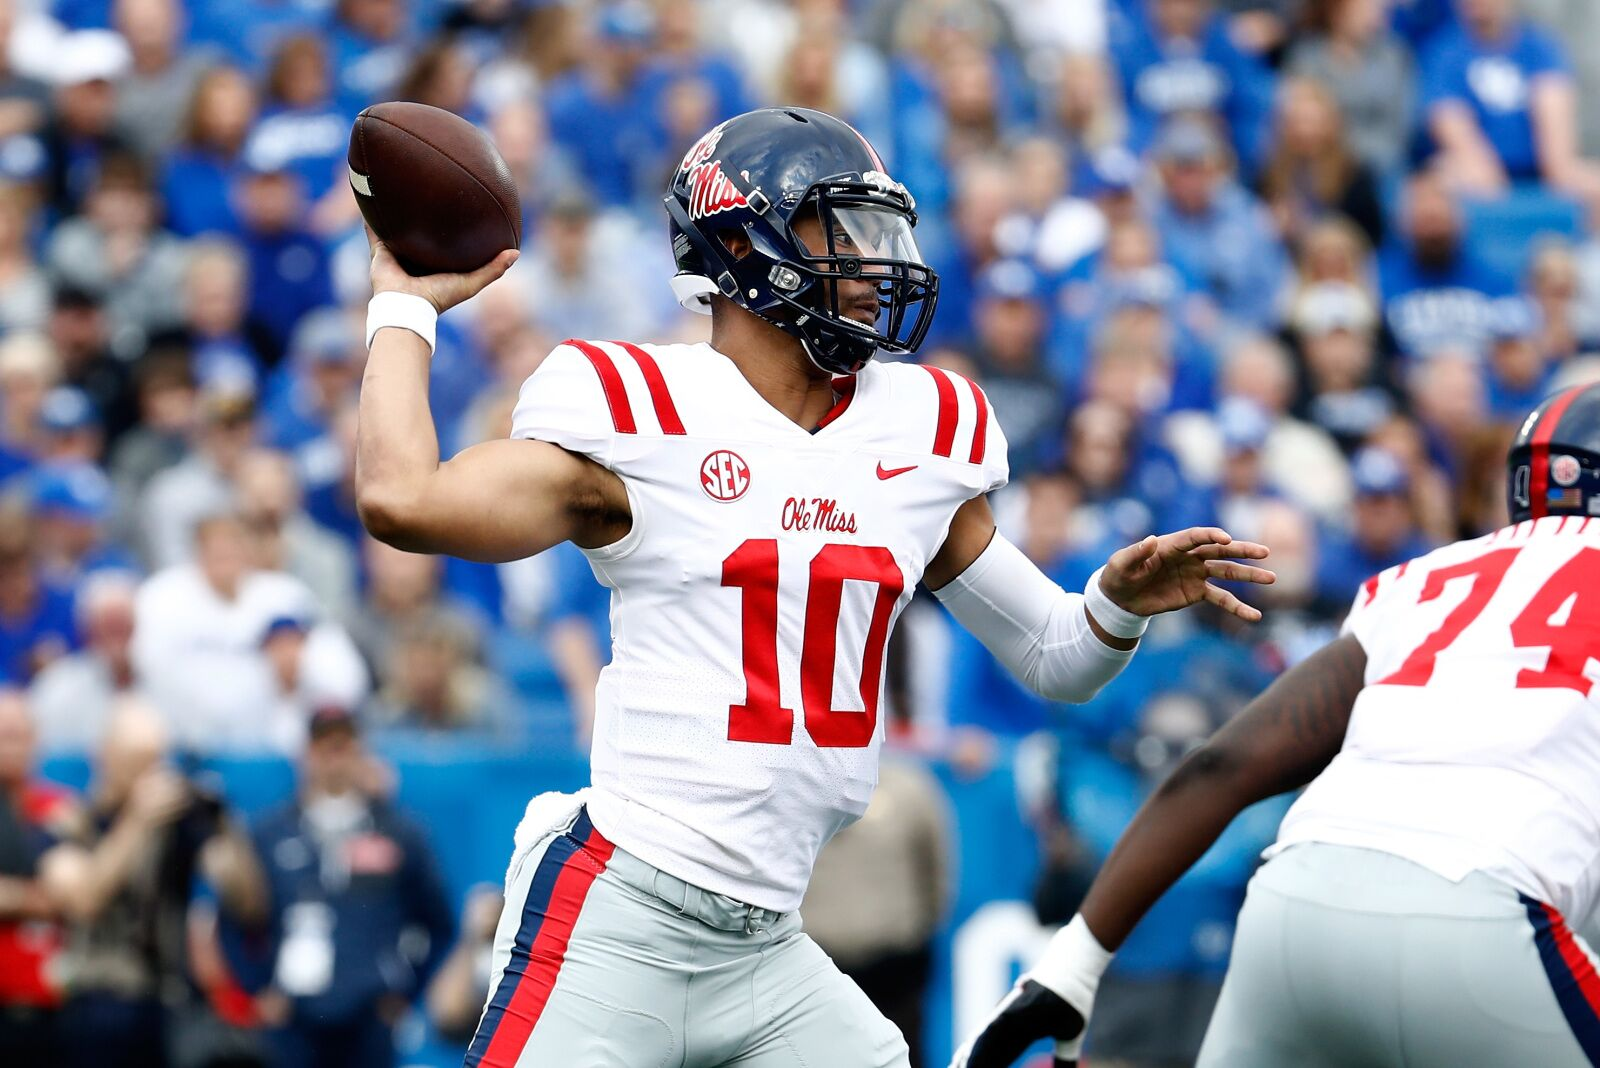 Get the latest NFL Draft prospect rankings from CBS Sports Find out where your favorite Position stacks up against the 2019 class and view expert mock drafts